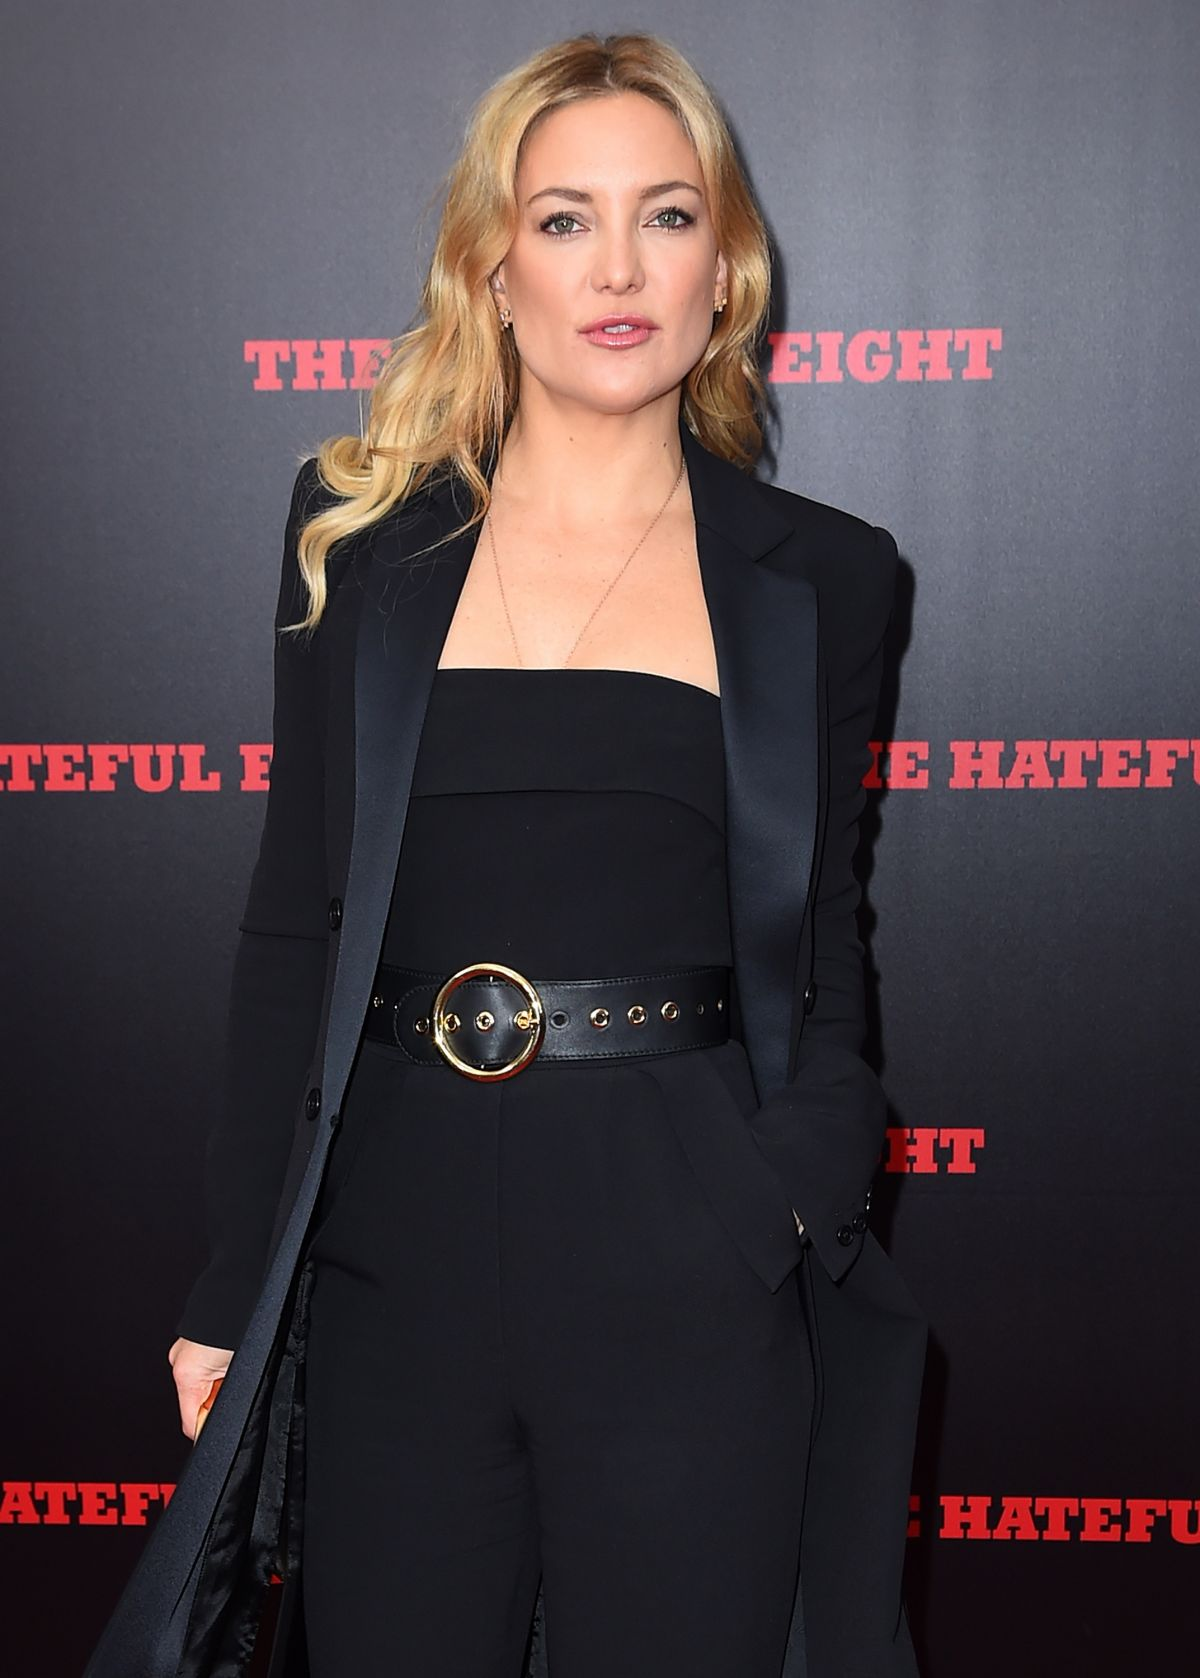 KATE HUDSON at The Hateful Eight Premiere in New York 12/14/2015